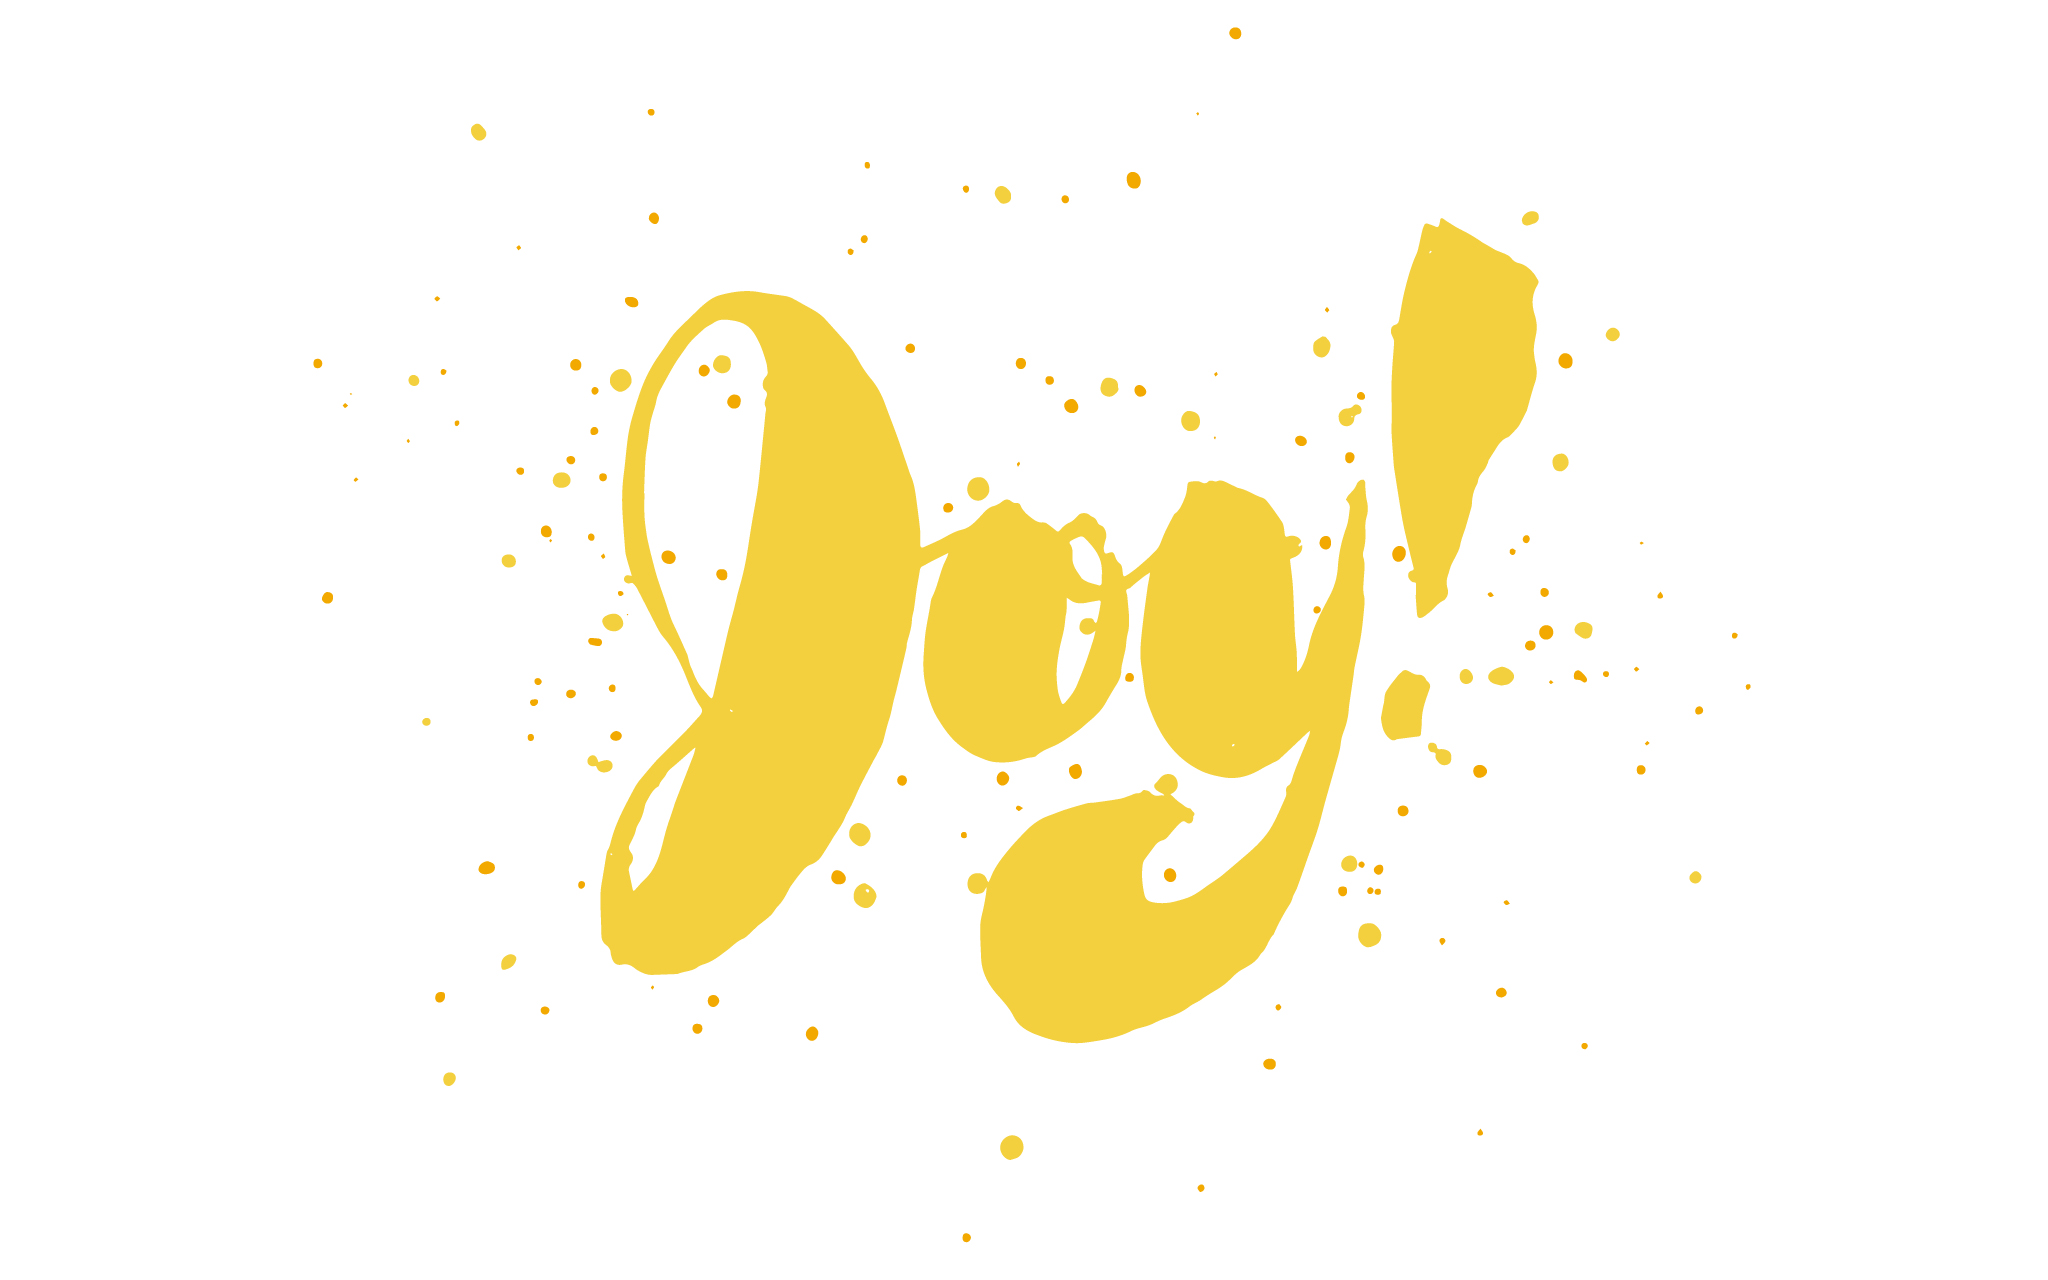 How do I visualize an idea with letters?Part 5: Joy